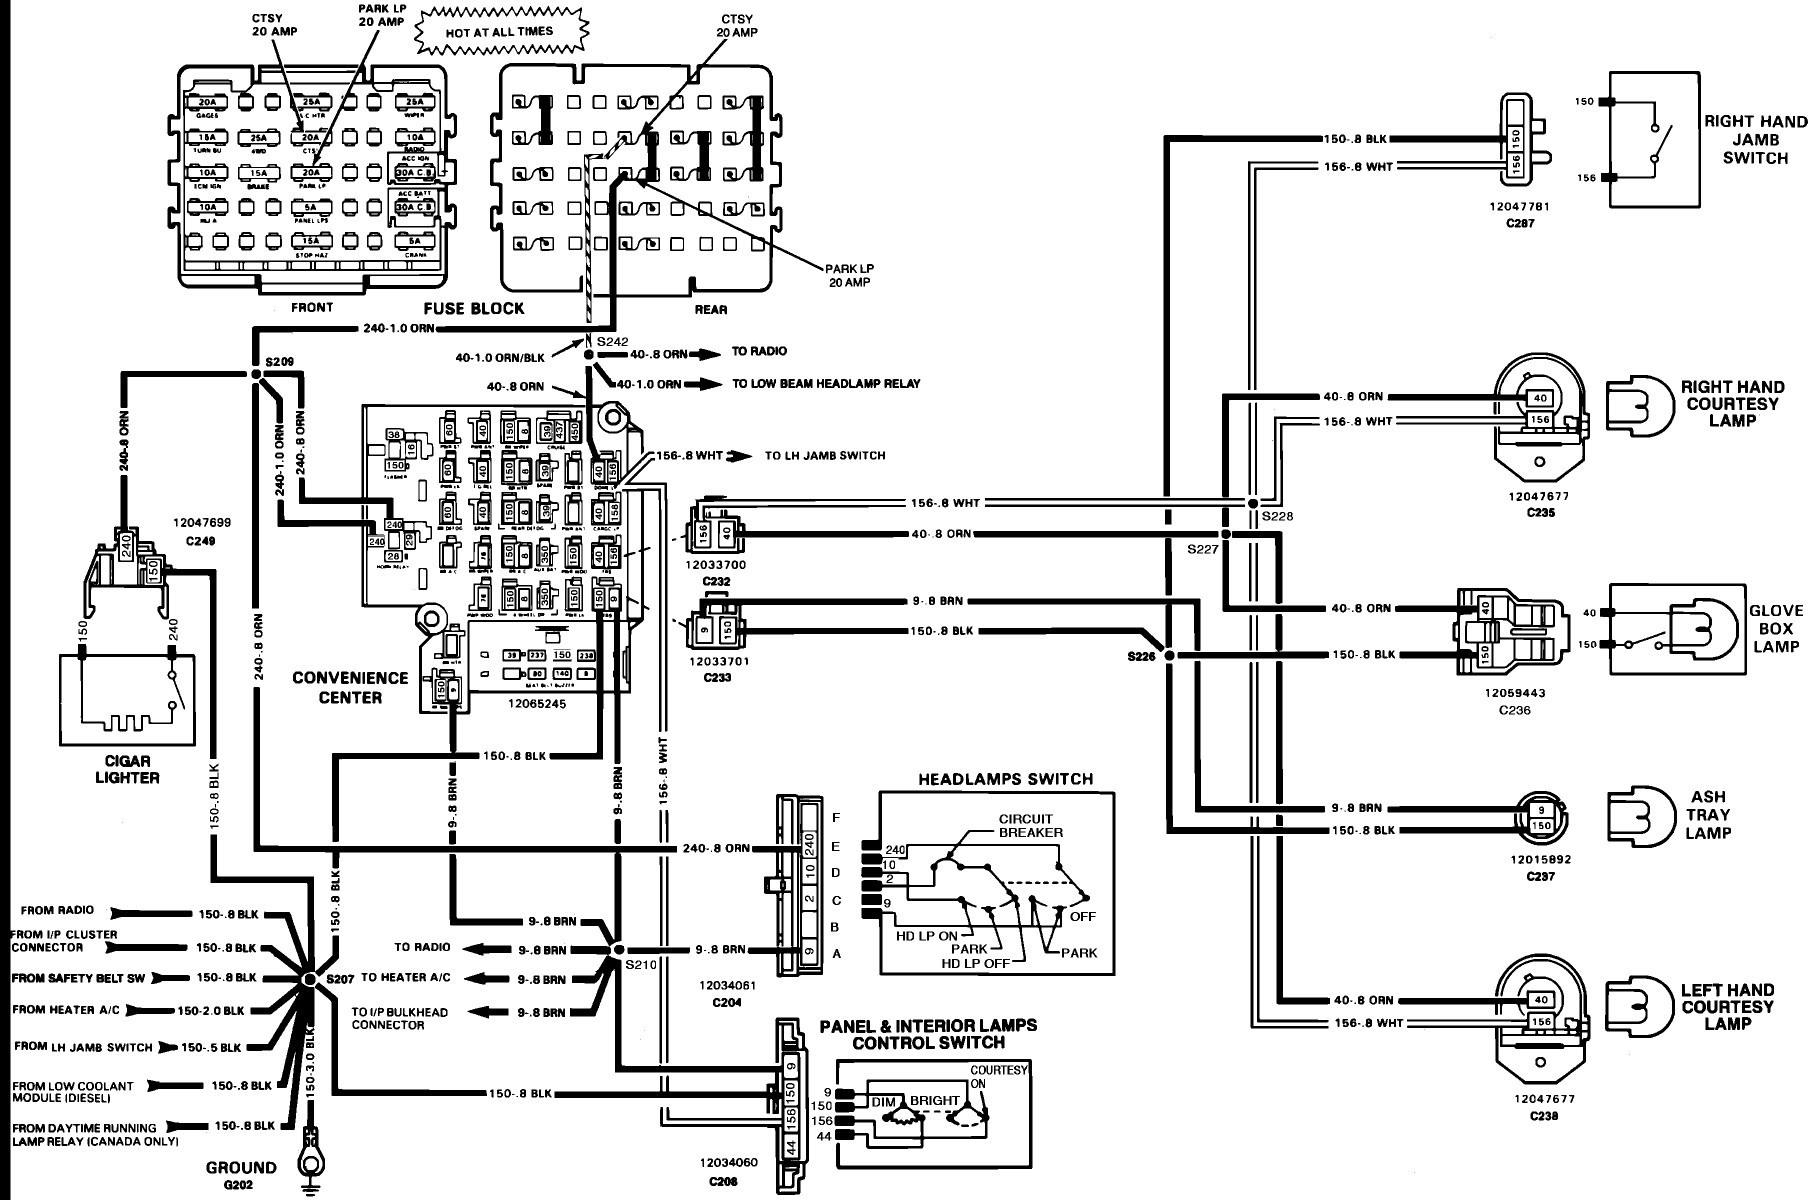 1989 Chevy 3500 Wiring Diagram - Wiring Diagram Name - Chevy 3500 Trailer Wiring Diagram